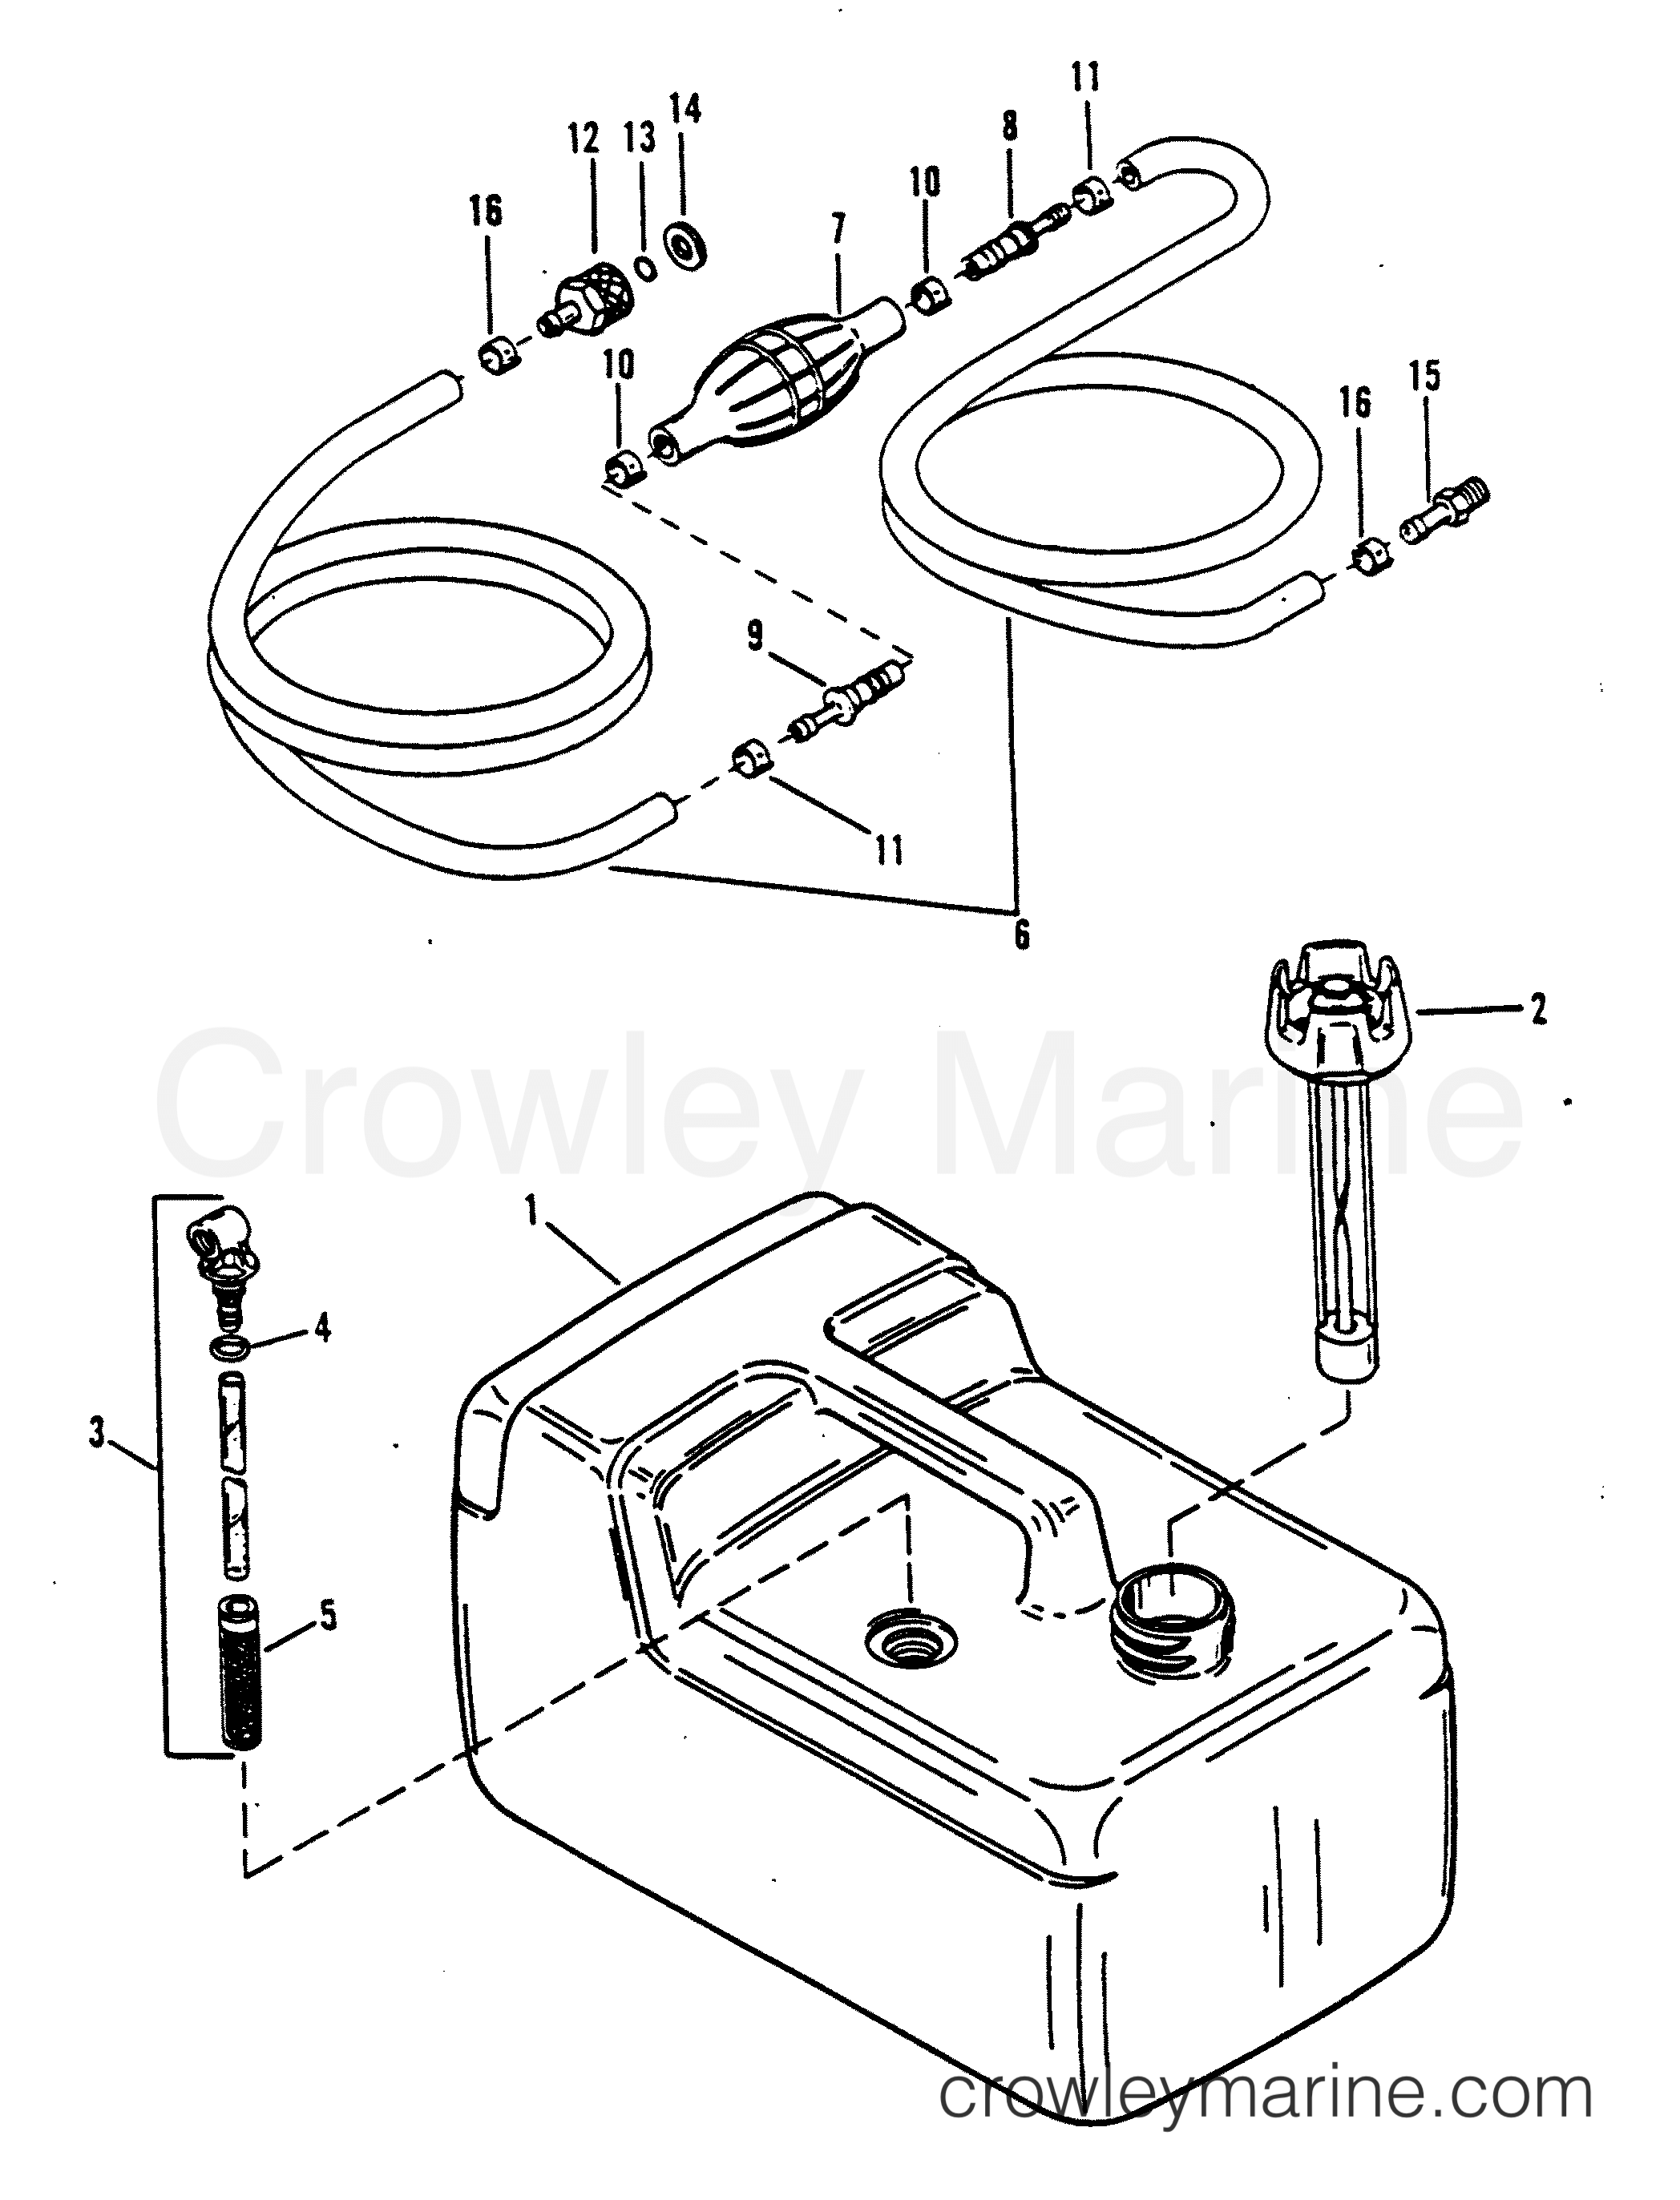 1988 Force Outboard 5 - H0052C88A [A] - FUEL TANK AND LINE (PLASTIC - 3.2 GALLON) section